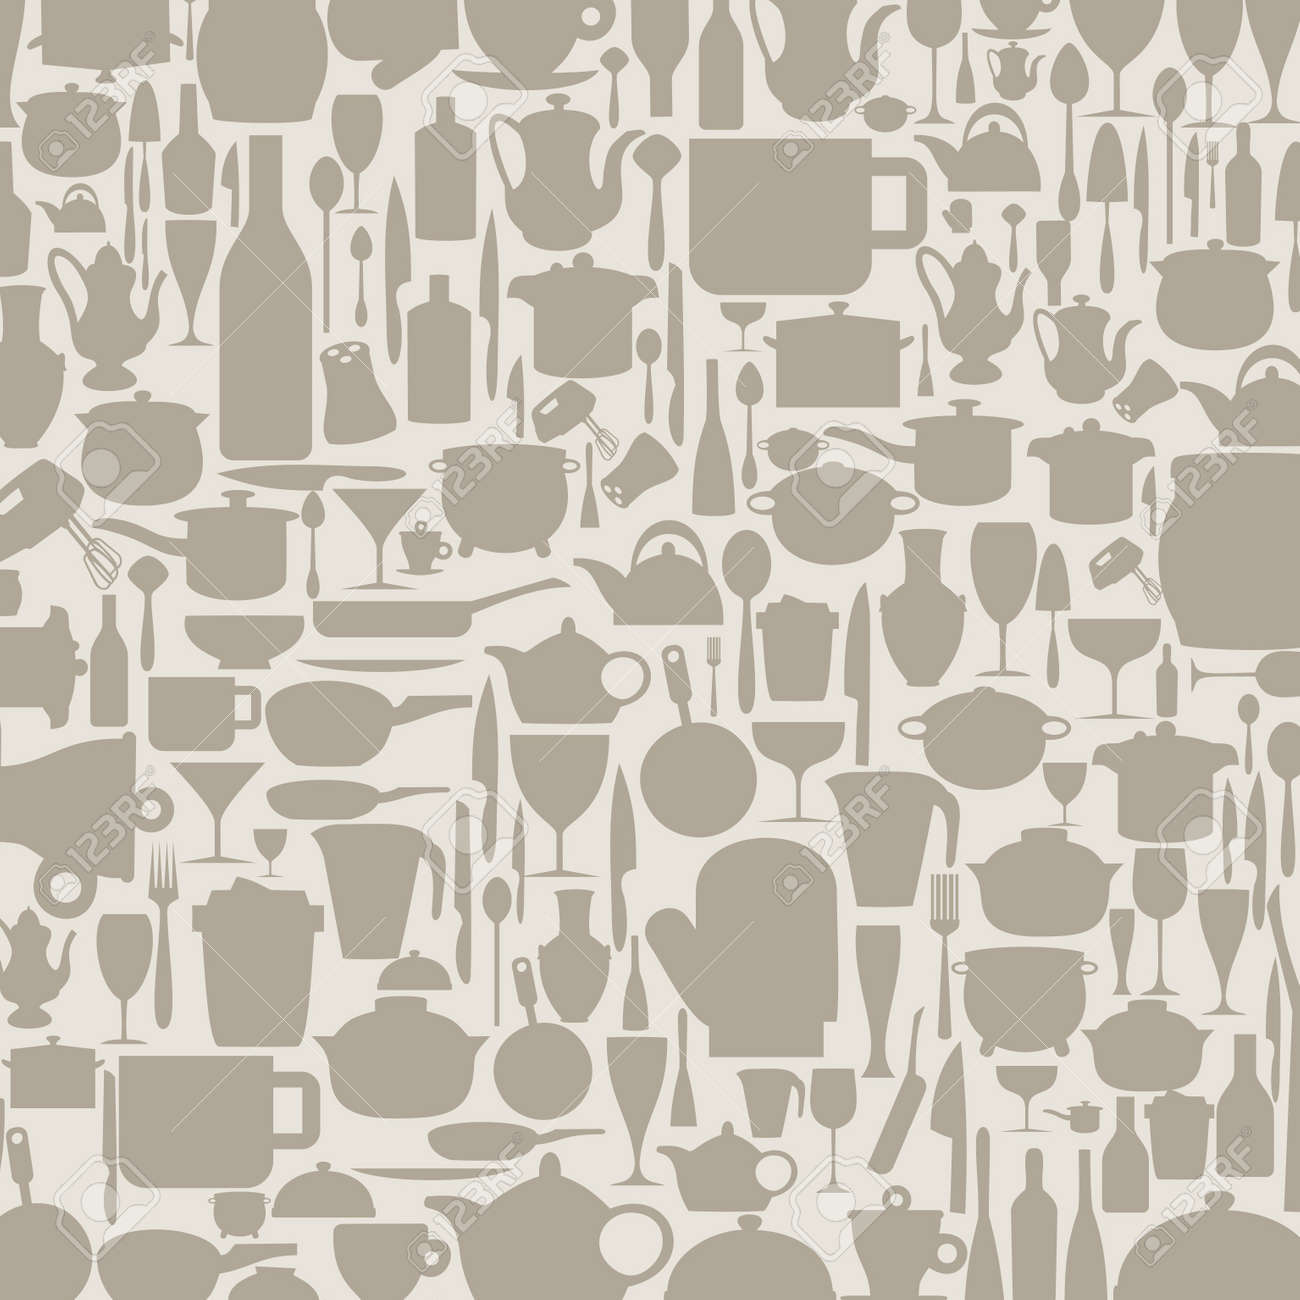 Beau Background On A Theme Kitchen Ware A Illustration Stock Vector   16027876